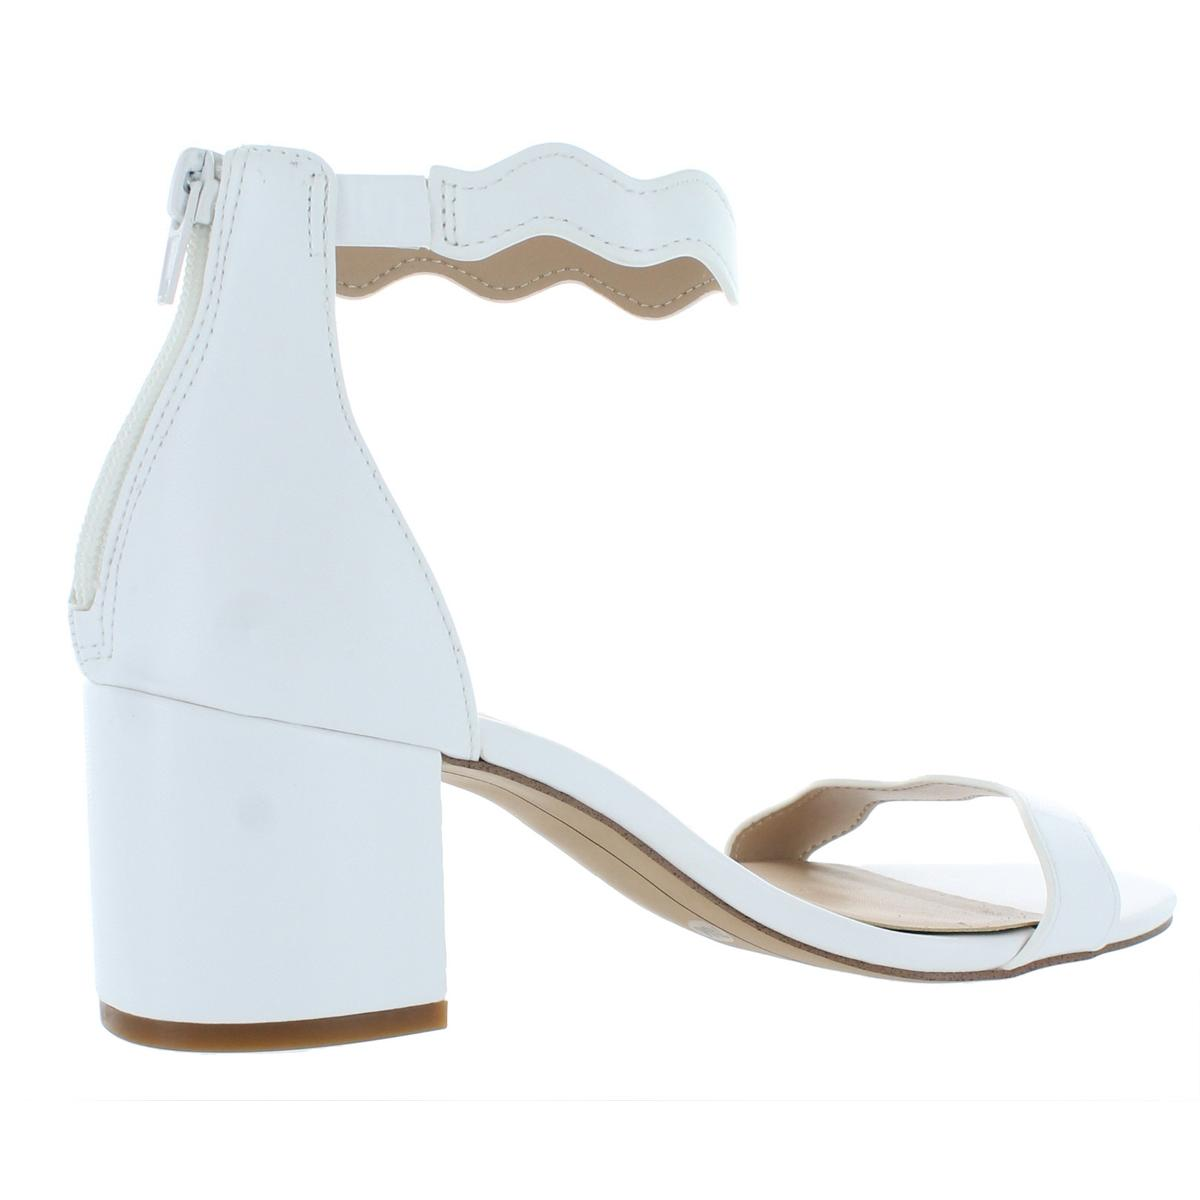 INC-Womens-Hadwin-Faux-Leather-Scalloped-Evening-Heels-Shoes-BHFO-7073 thumbnail 4